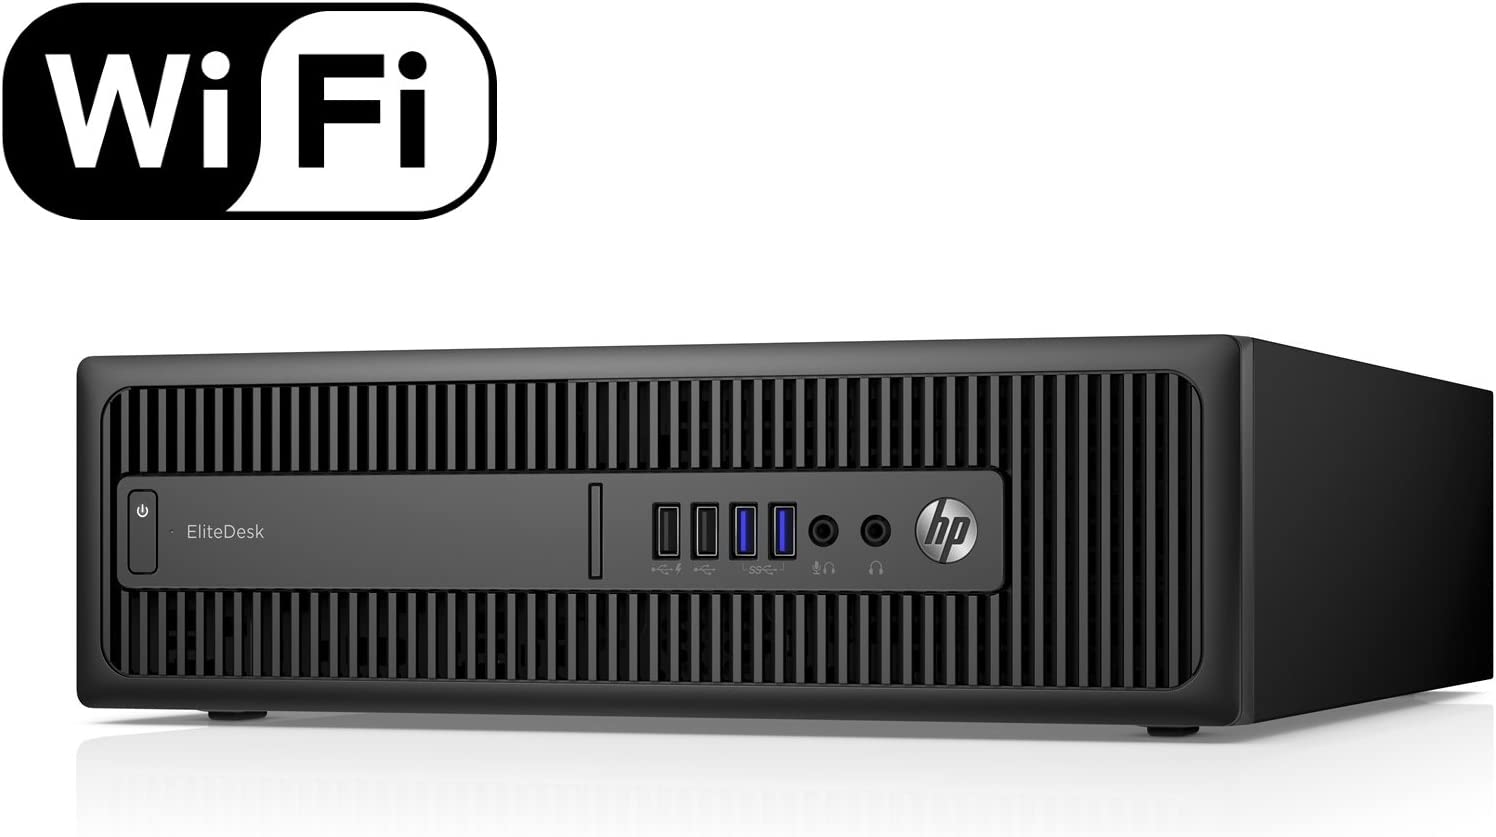 HP ELITEDESK 800 G1 SFF Slim Business Desktop Computer, Intel Core i5 4670 3.40 GHz, 4GB RAM, 500GB HDD, DVD, USB 3.0, Windows 10 Pro 64 Bit (Renewed)